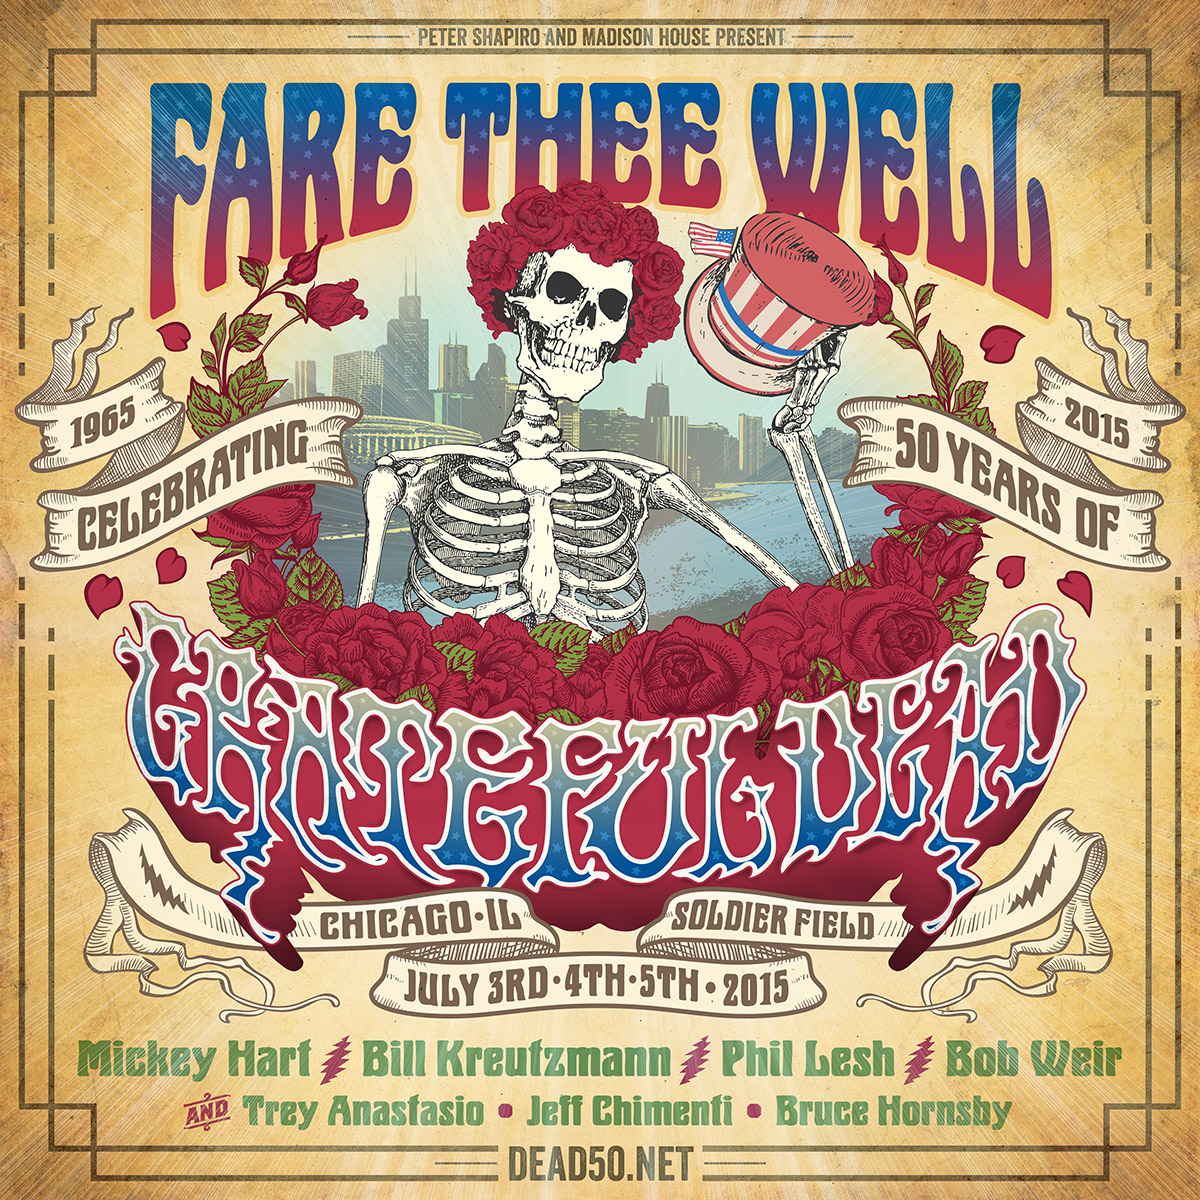 Fan Critically Injured 20 Foot Fall Grateful Dead Show together with Past Shows together with Prweb527993 as well Summer C  Festival 2014 Trey Primus Yonder And More furthermore Dianna 2Ns. on trey anastasio tickets